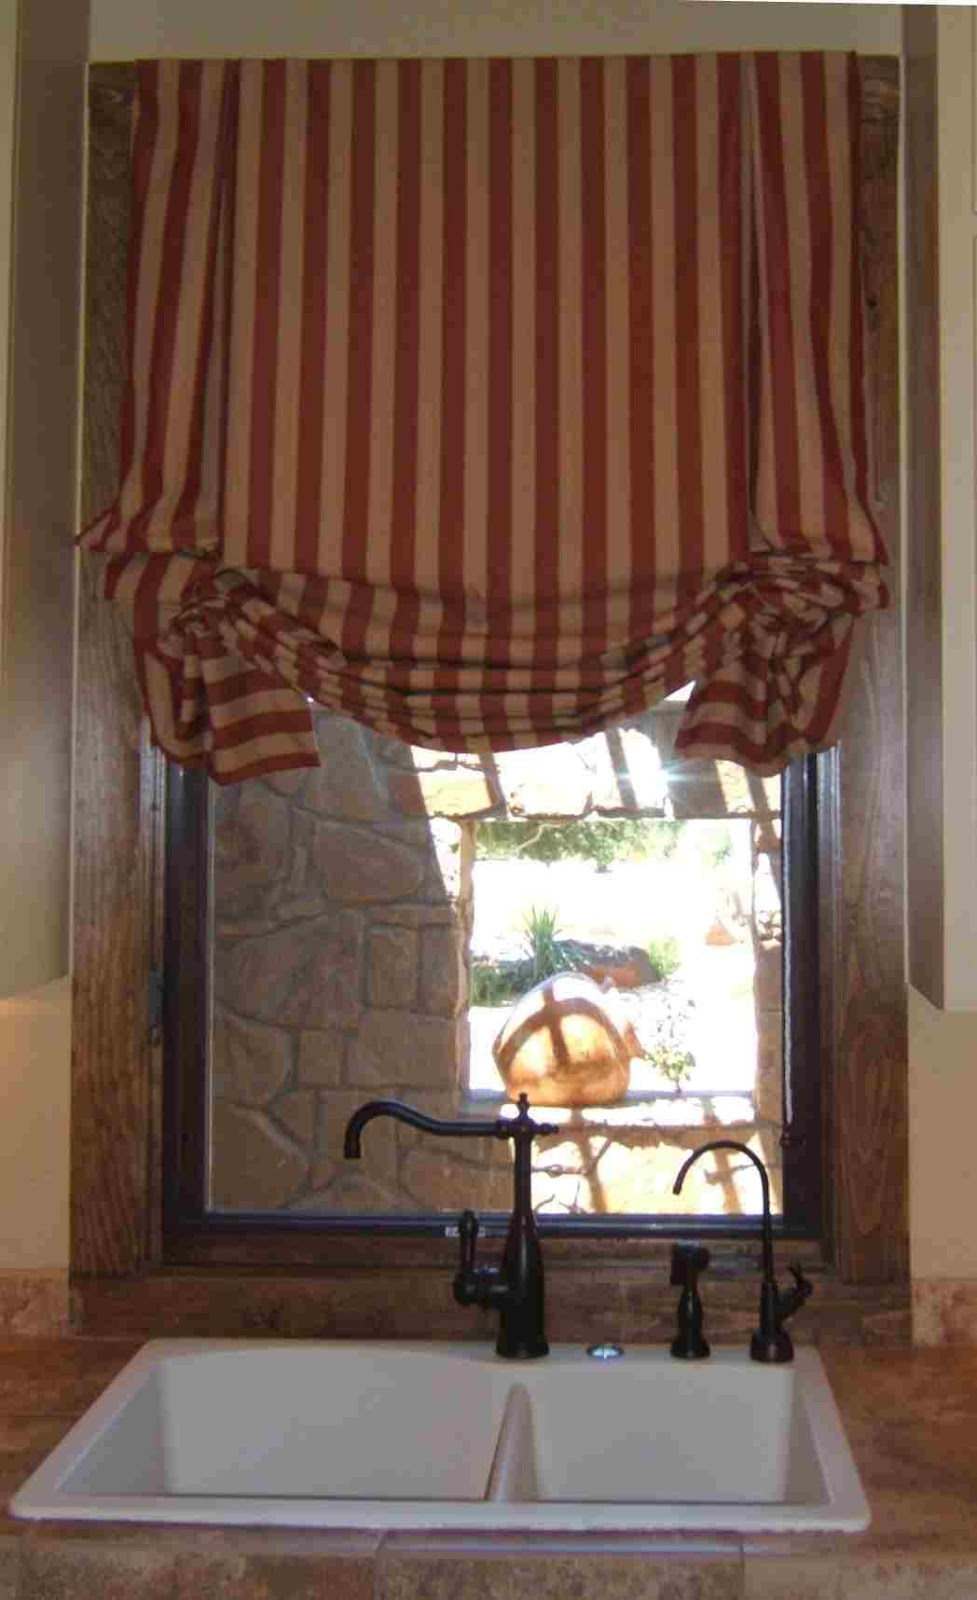 Balloon valves pictures balloon roman shades for Roman shades and curtains